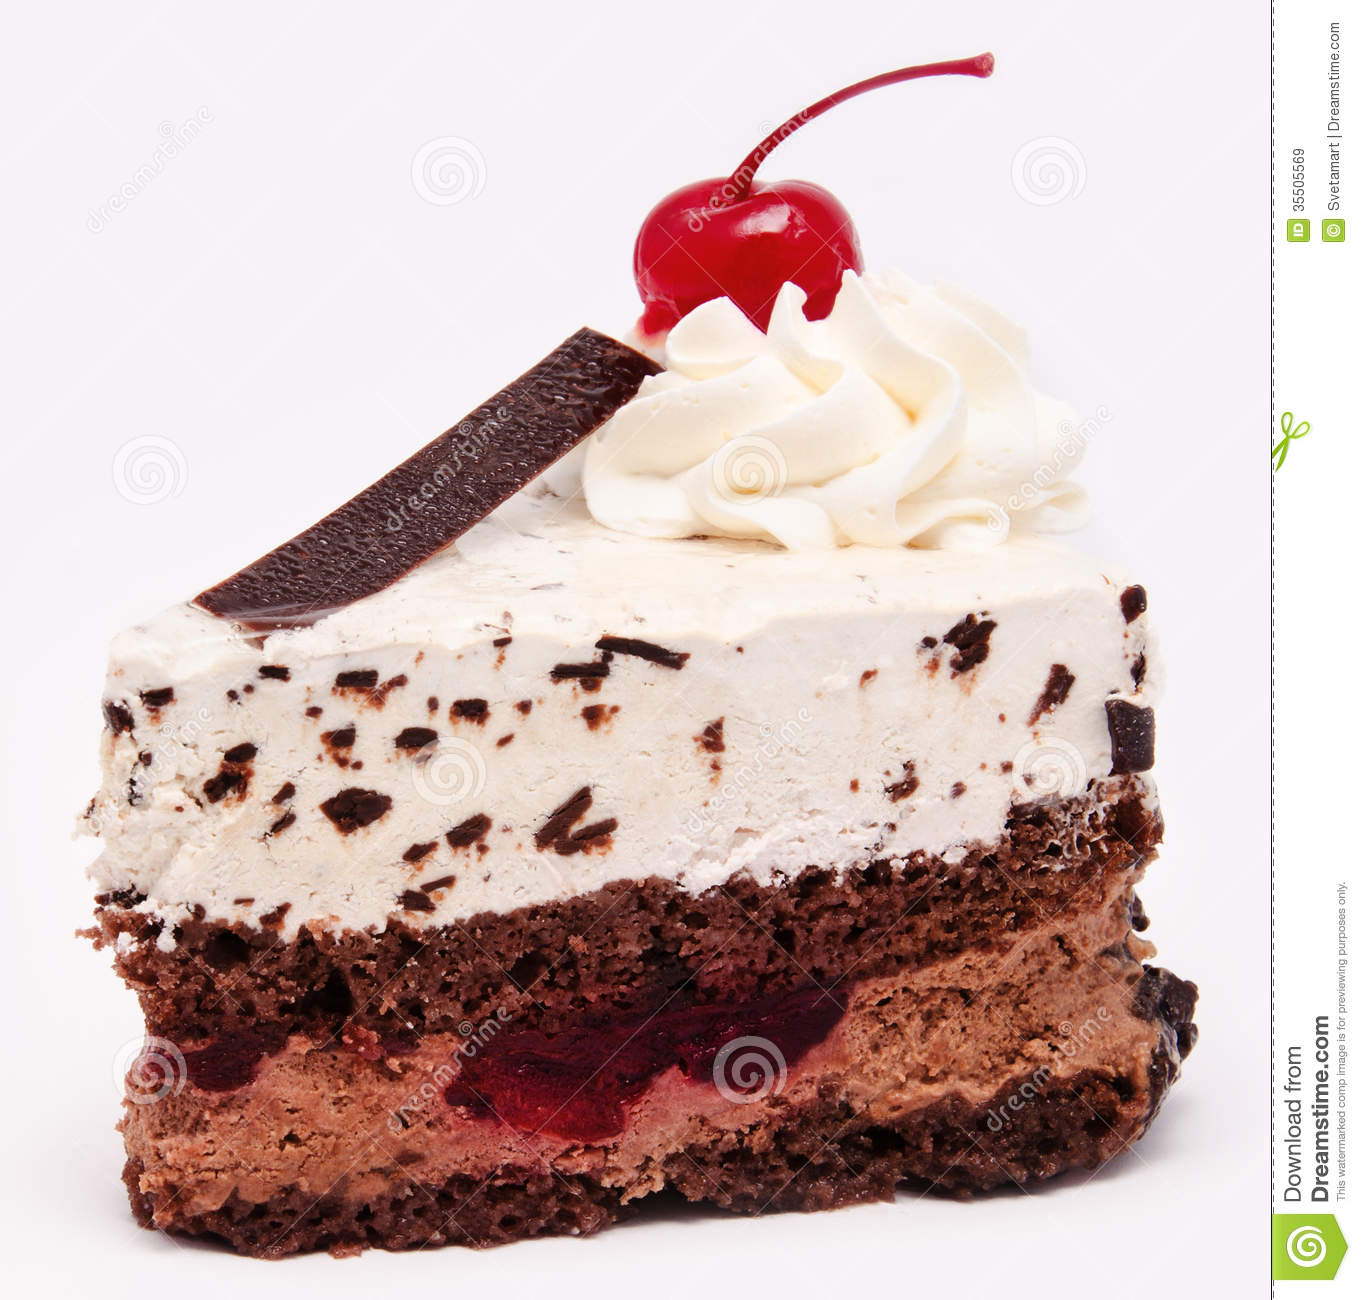 Cake With Icing On Top : Chocolate Cake With Cherry On The Top Icing Isolated Royalty Free Stock Images - Image: 35505569